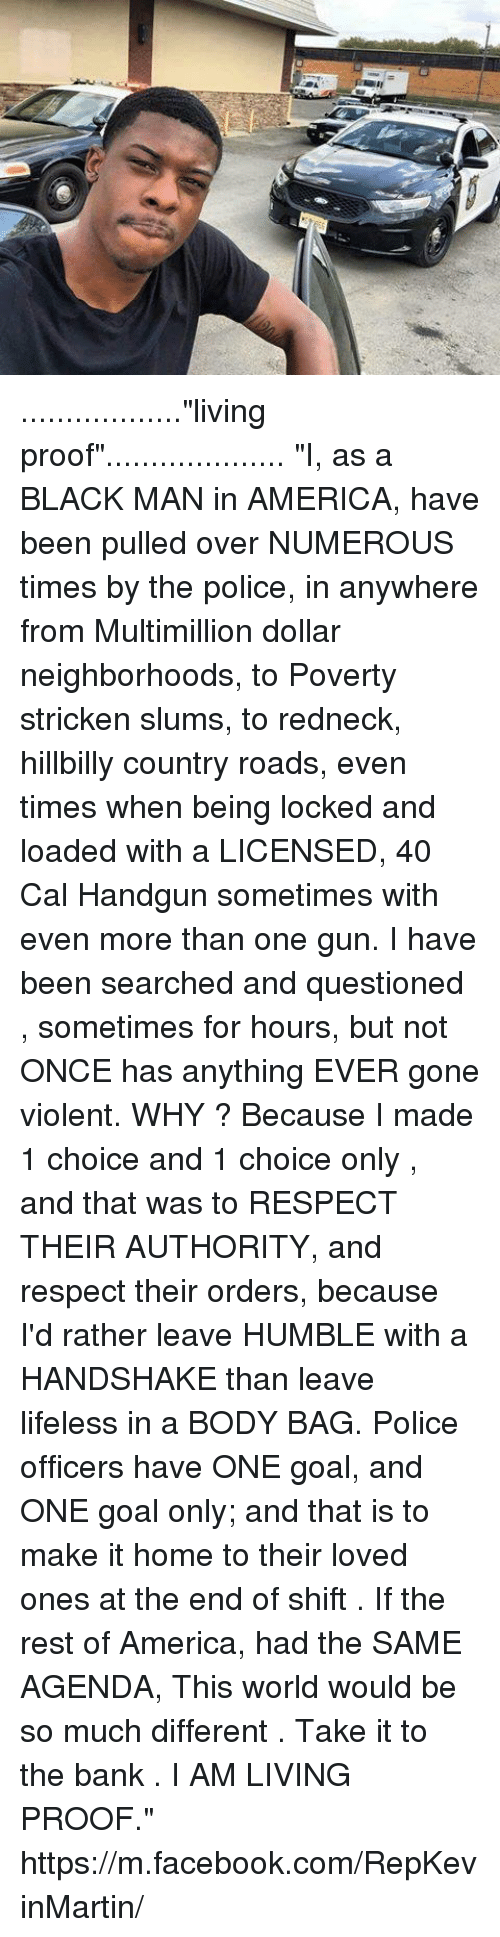 """hillbilly: ..................""""living proof"""".................... """"I, as a BLACK MAN in AMERICA, have been pulled over NUMEROUS times by the police, in anywhere from Multimillion dollar neighborhoods, to Poverty stricken slums, to redneck, hillbilly country roads, even times when being locked and loaded with a LICENSED, 40 Cal Handgun sometimes with even more than one gun. I have been searched and questioned , sometimes for hours, but not ONCE has anything EVER gone violent. WHY ? Because I made 1 choice and 1 choice only , and that was to RESPECT THEIR AUTHORITY, and respect their orders, because I'd rather leave HUMBLE with a HANDSHAKE than leave lifeless in a BODY BAG. Police officers have ONE goal, and ONE goal only; and that is to make it home to their loved ones at the end of shift . If the rest of America, had the SAME AGENDA, This world would be so much different .  Take it to the bank . I AM LIVING PROOF.""""  https://m.facebook.com/RepKevinMartin/"""